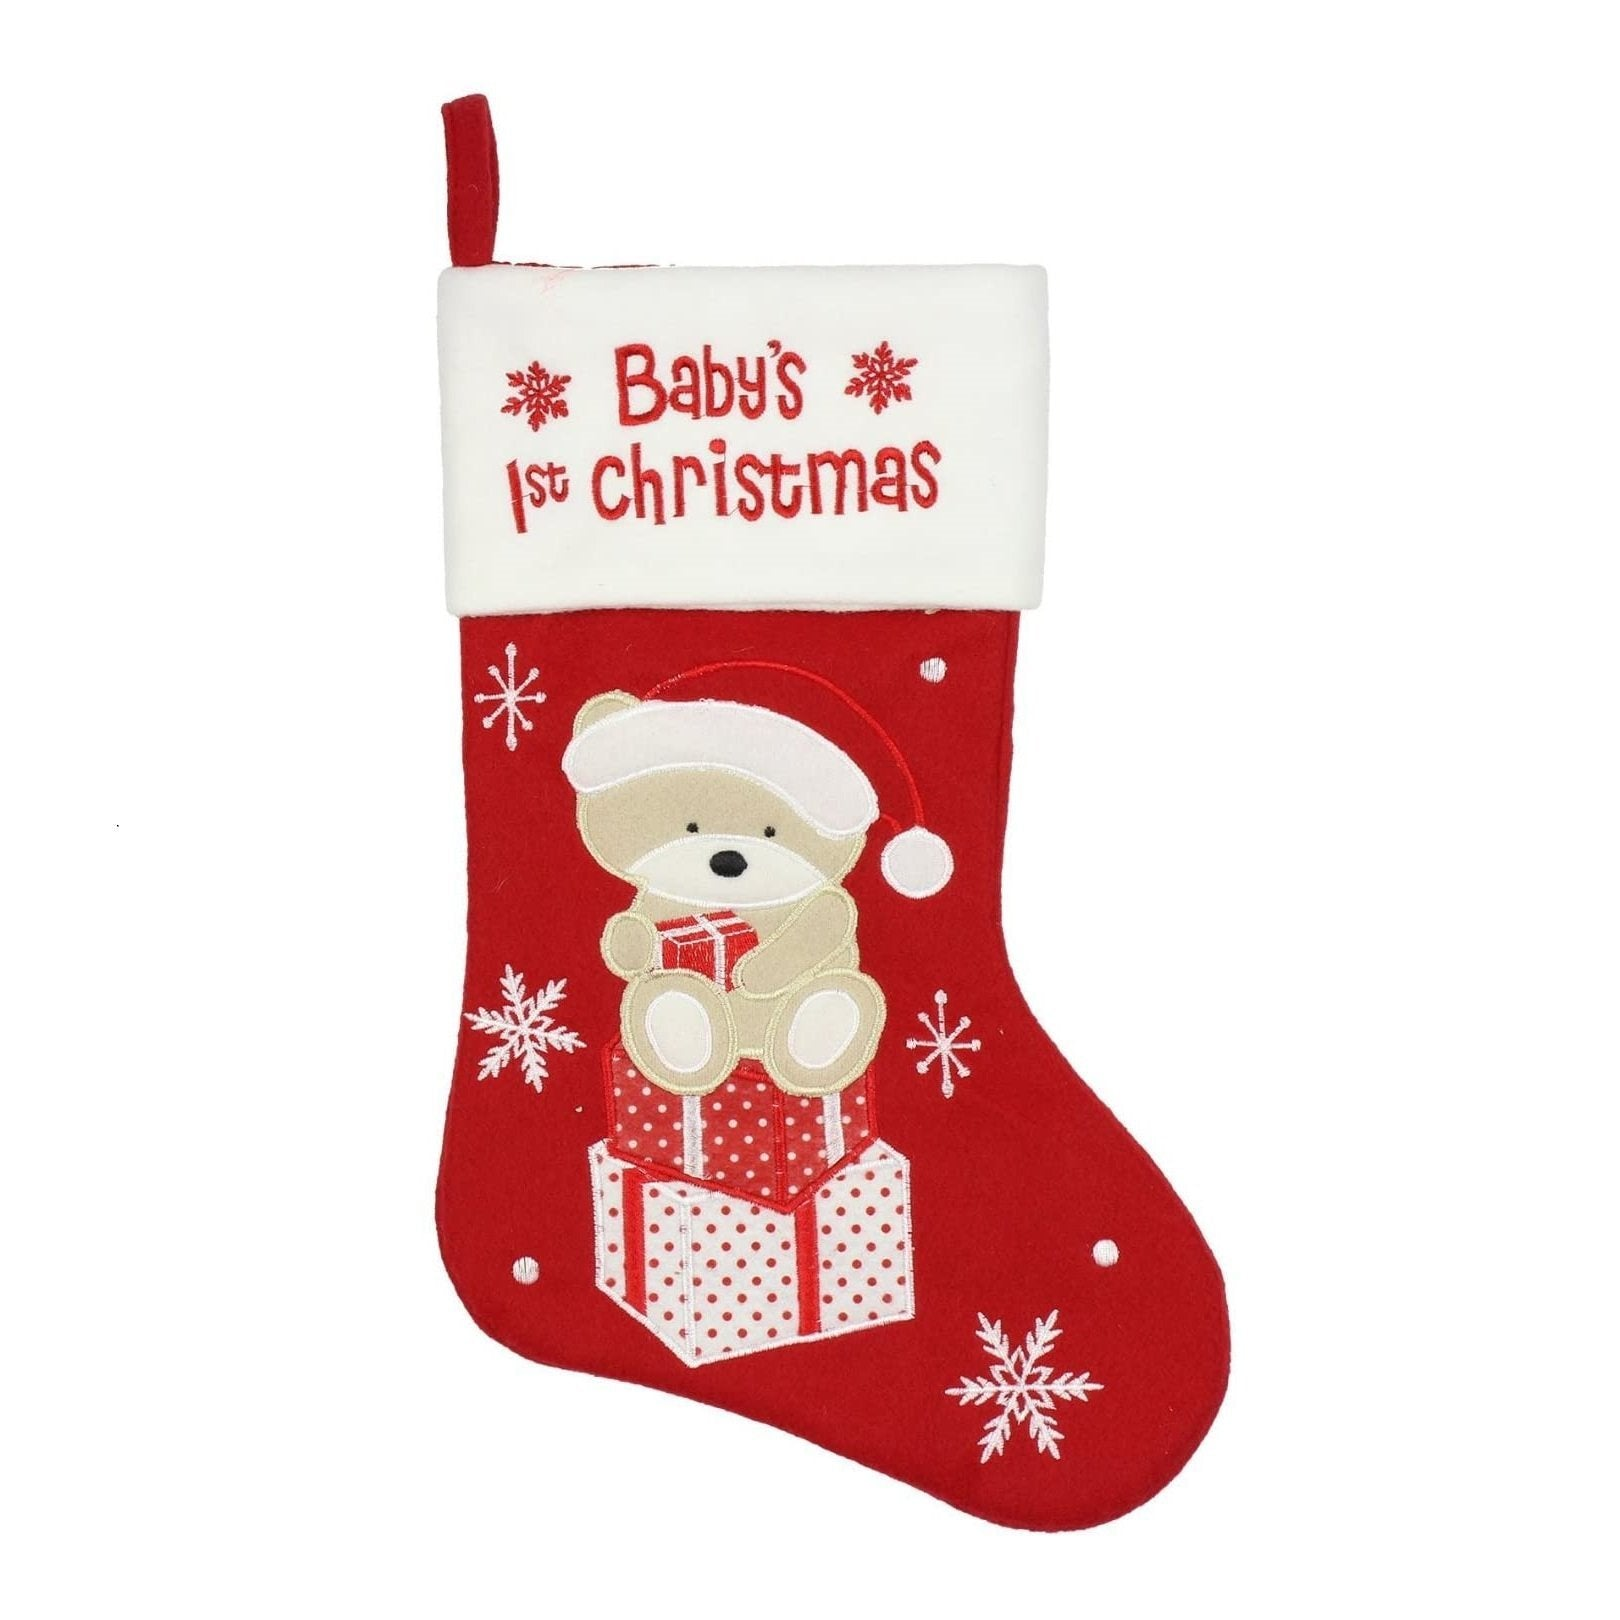 Christmas Stocking - Baby's 1st Christmas - Chic Petit